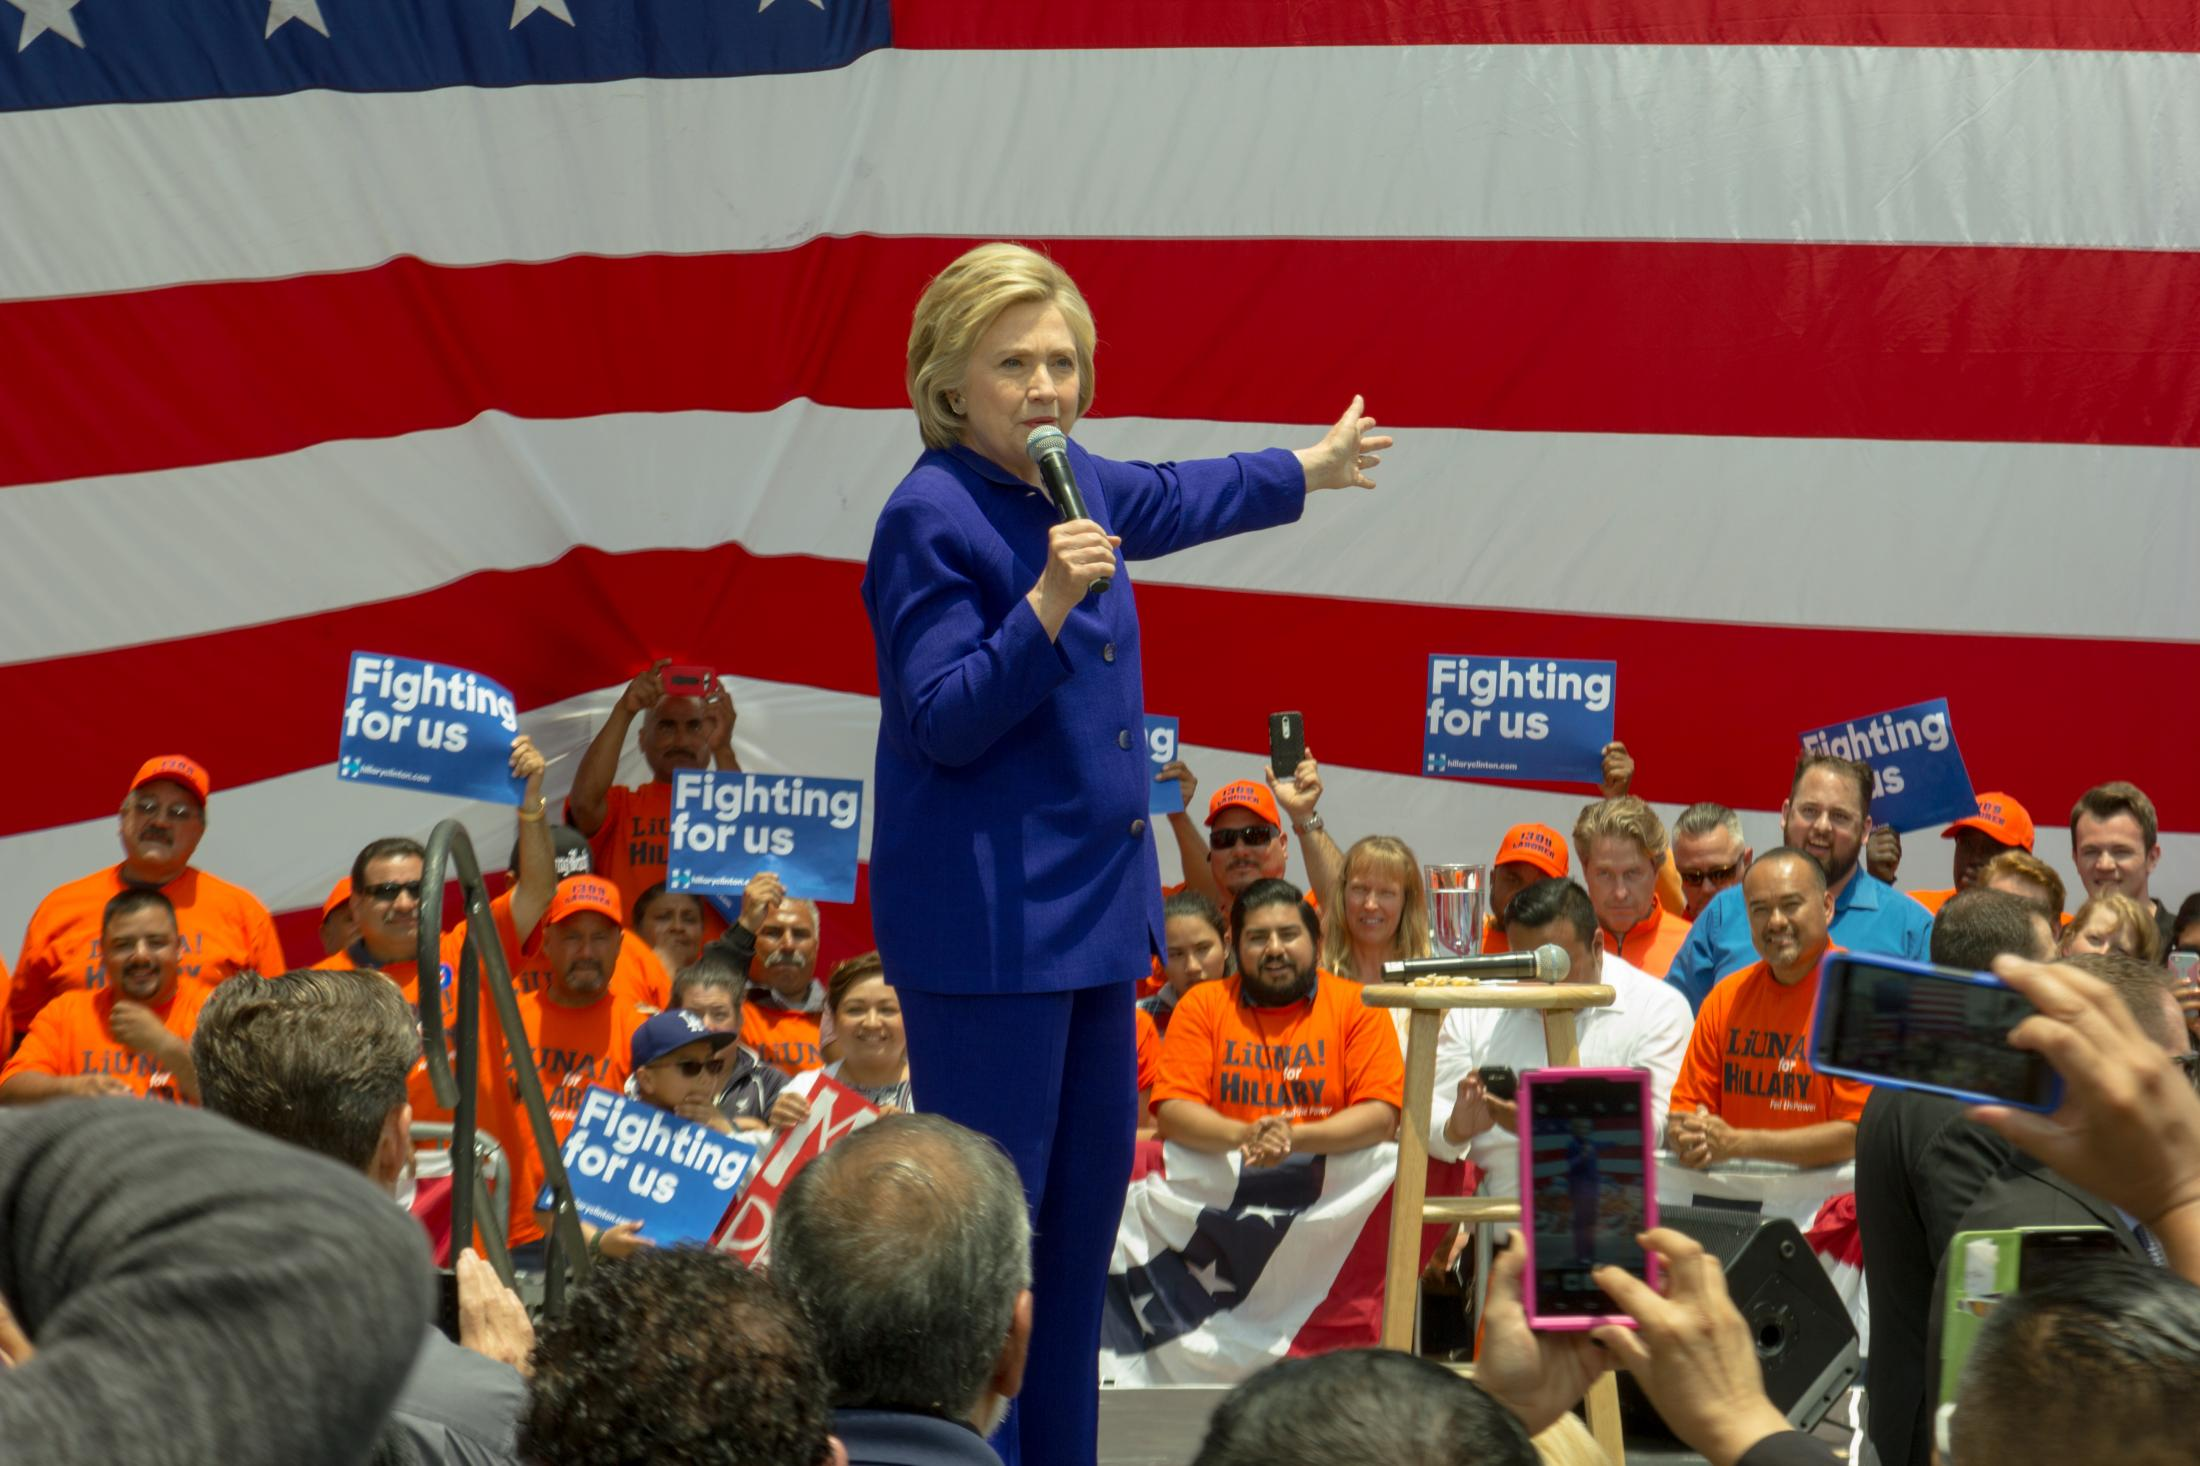 Hillary Clinton speaks to a crowd of supporters at her get out the vote rally in Lynwood, CA at Plaza Mexico on June 6, 2016.